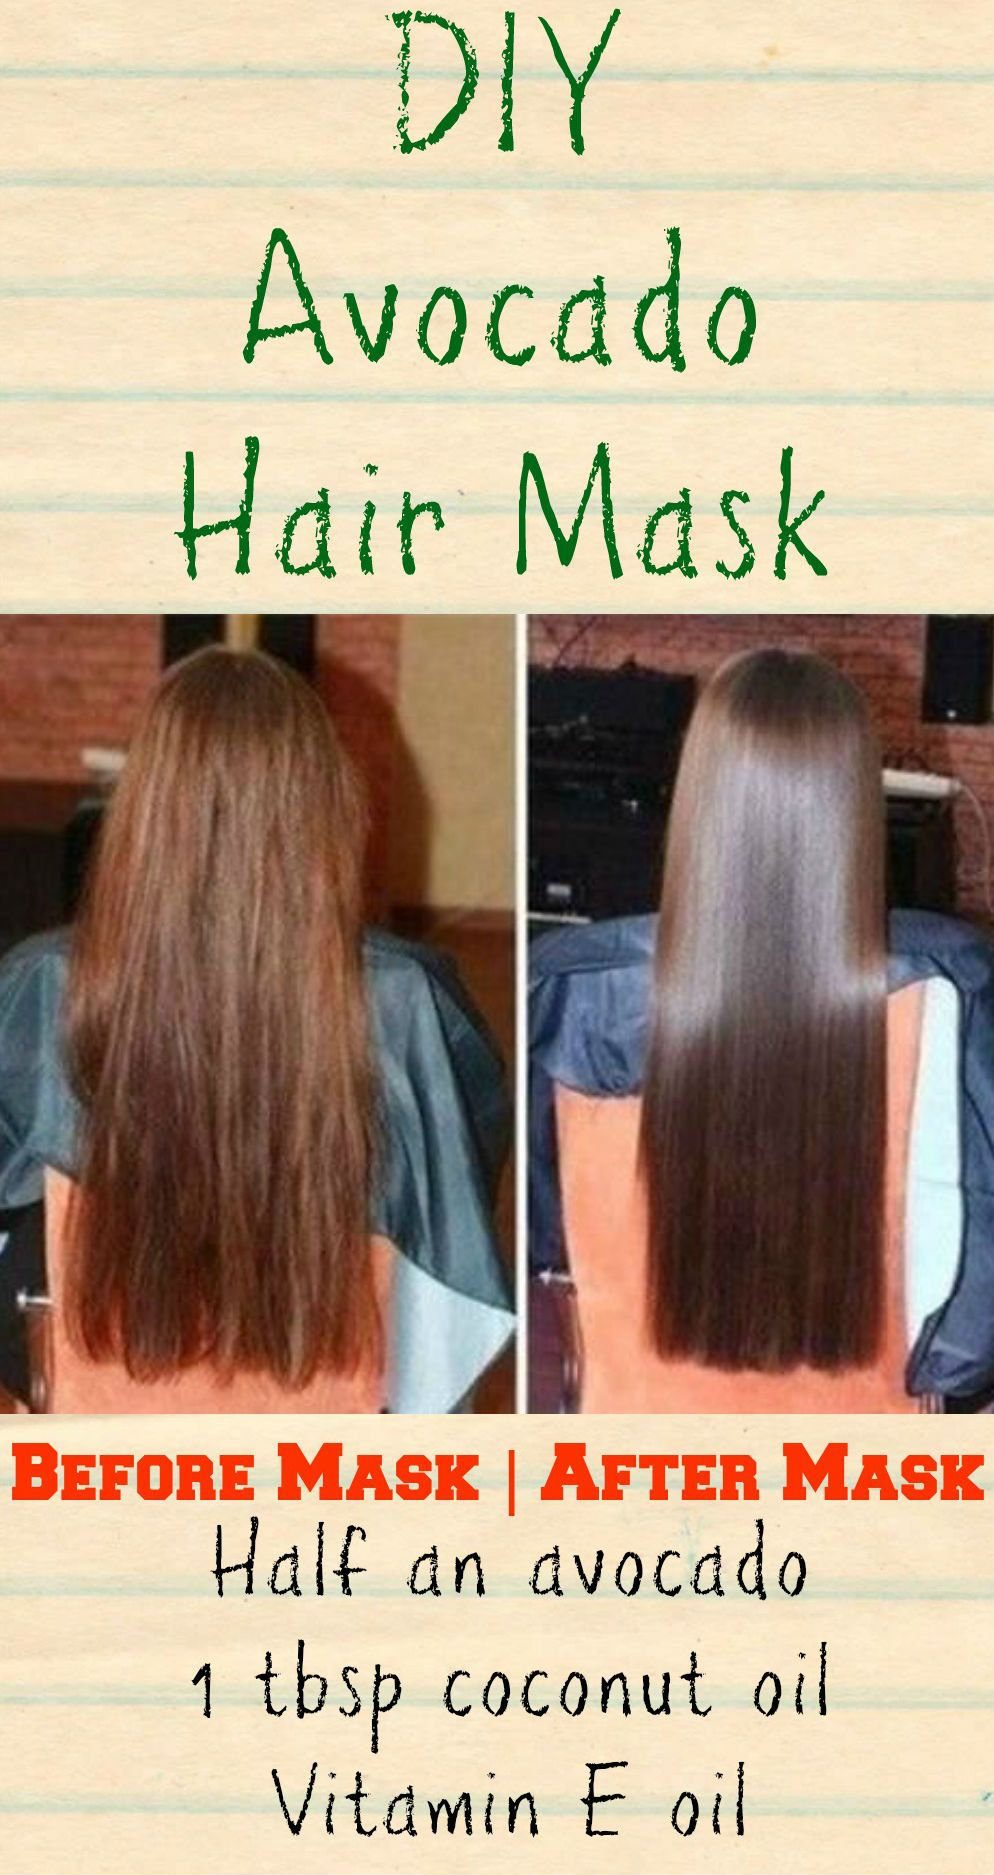 Mask for hair at night - a simple and effective way to solve problems